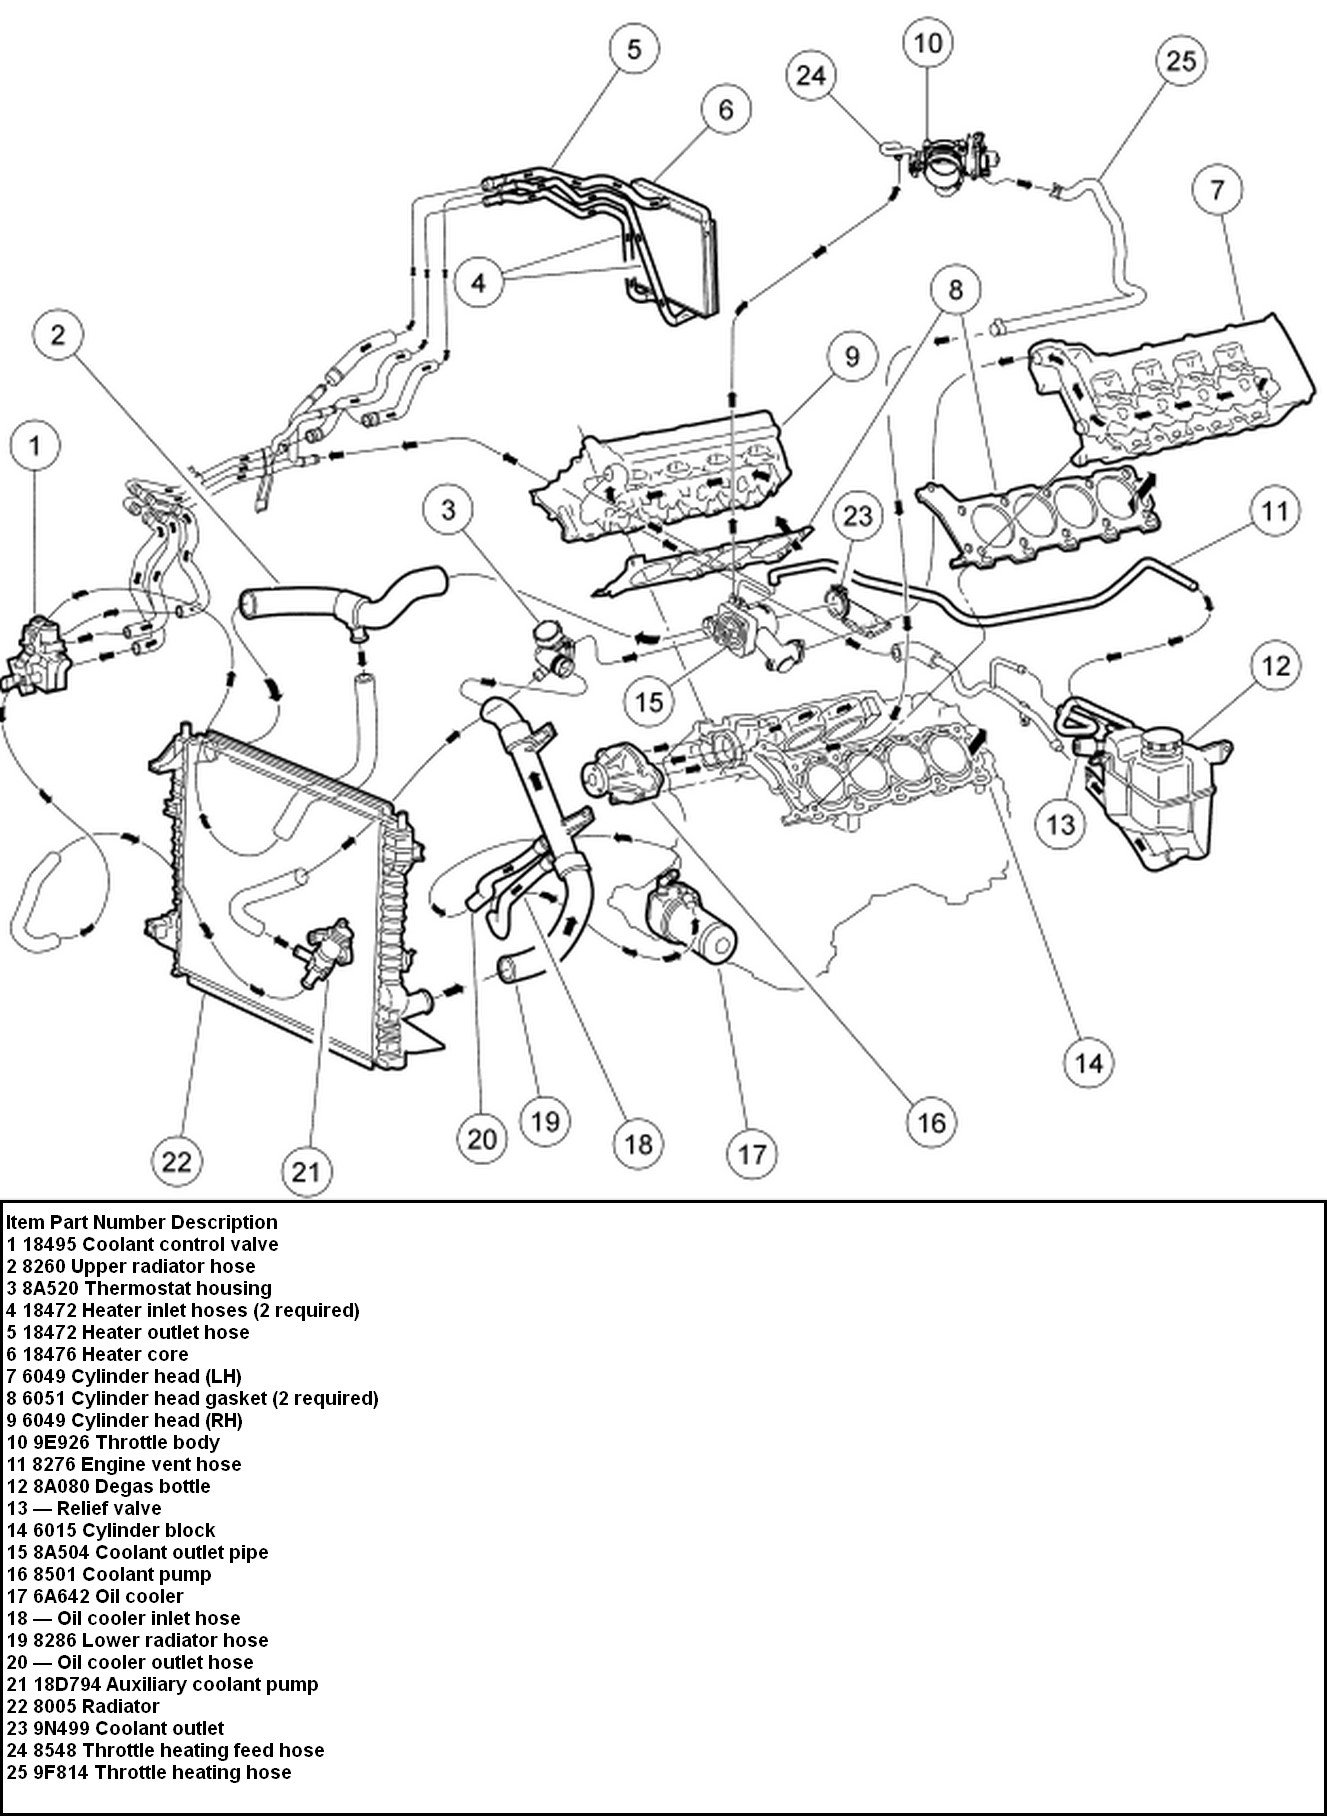 What Is The Name For Crossover Pipe That Thermostat Housing. Lincoln. 2001 Lincoln Ls Transmission Line Diagram At Scoala.co